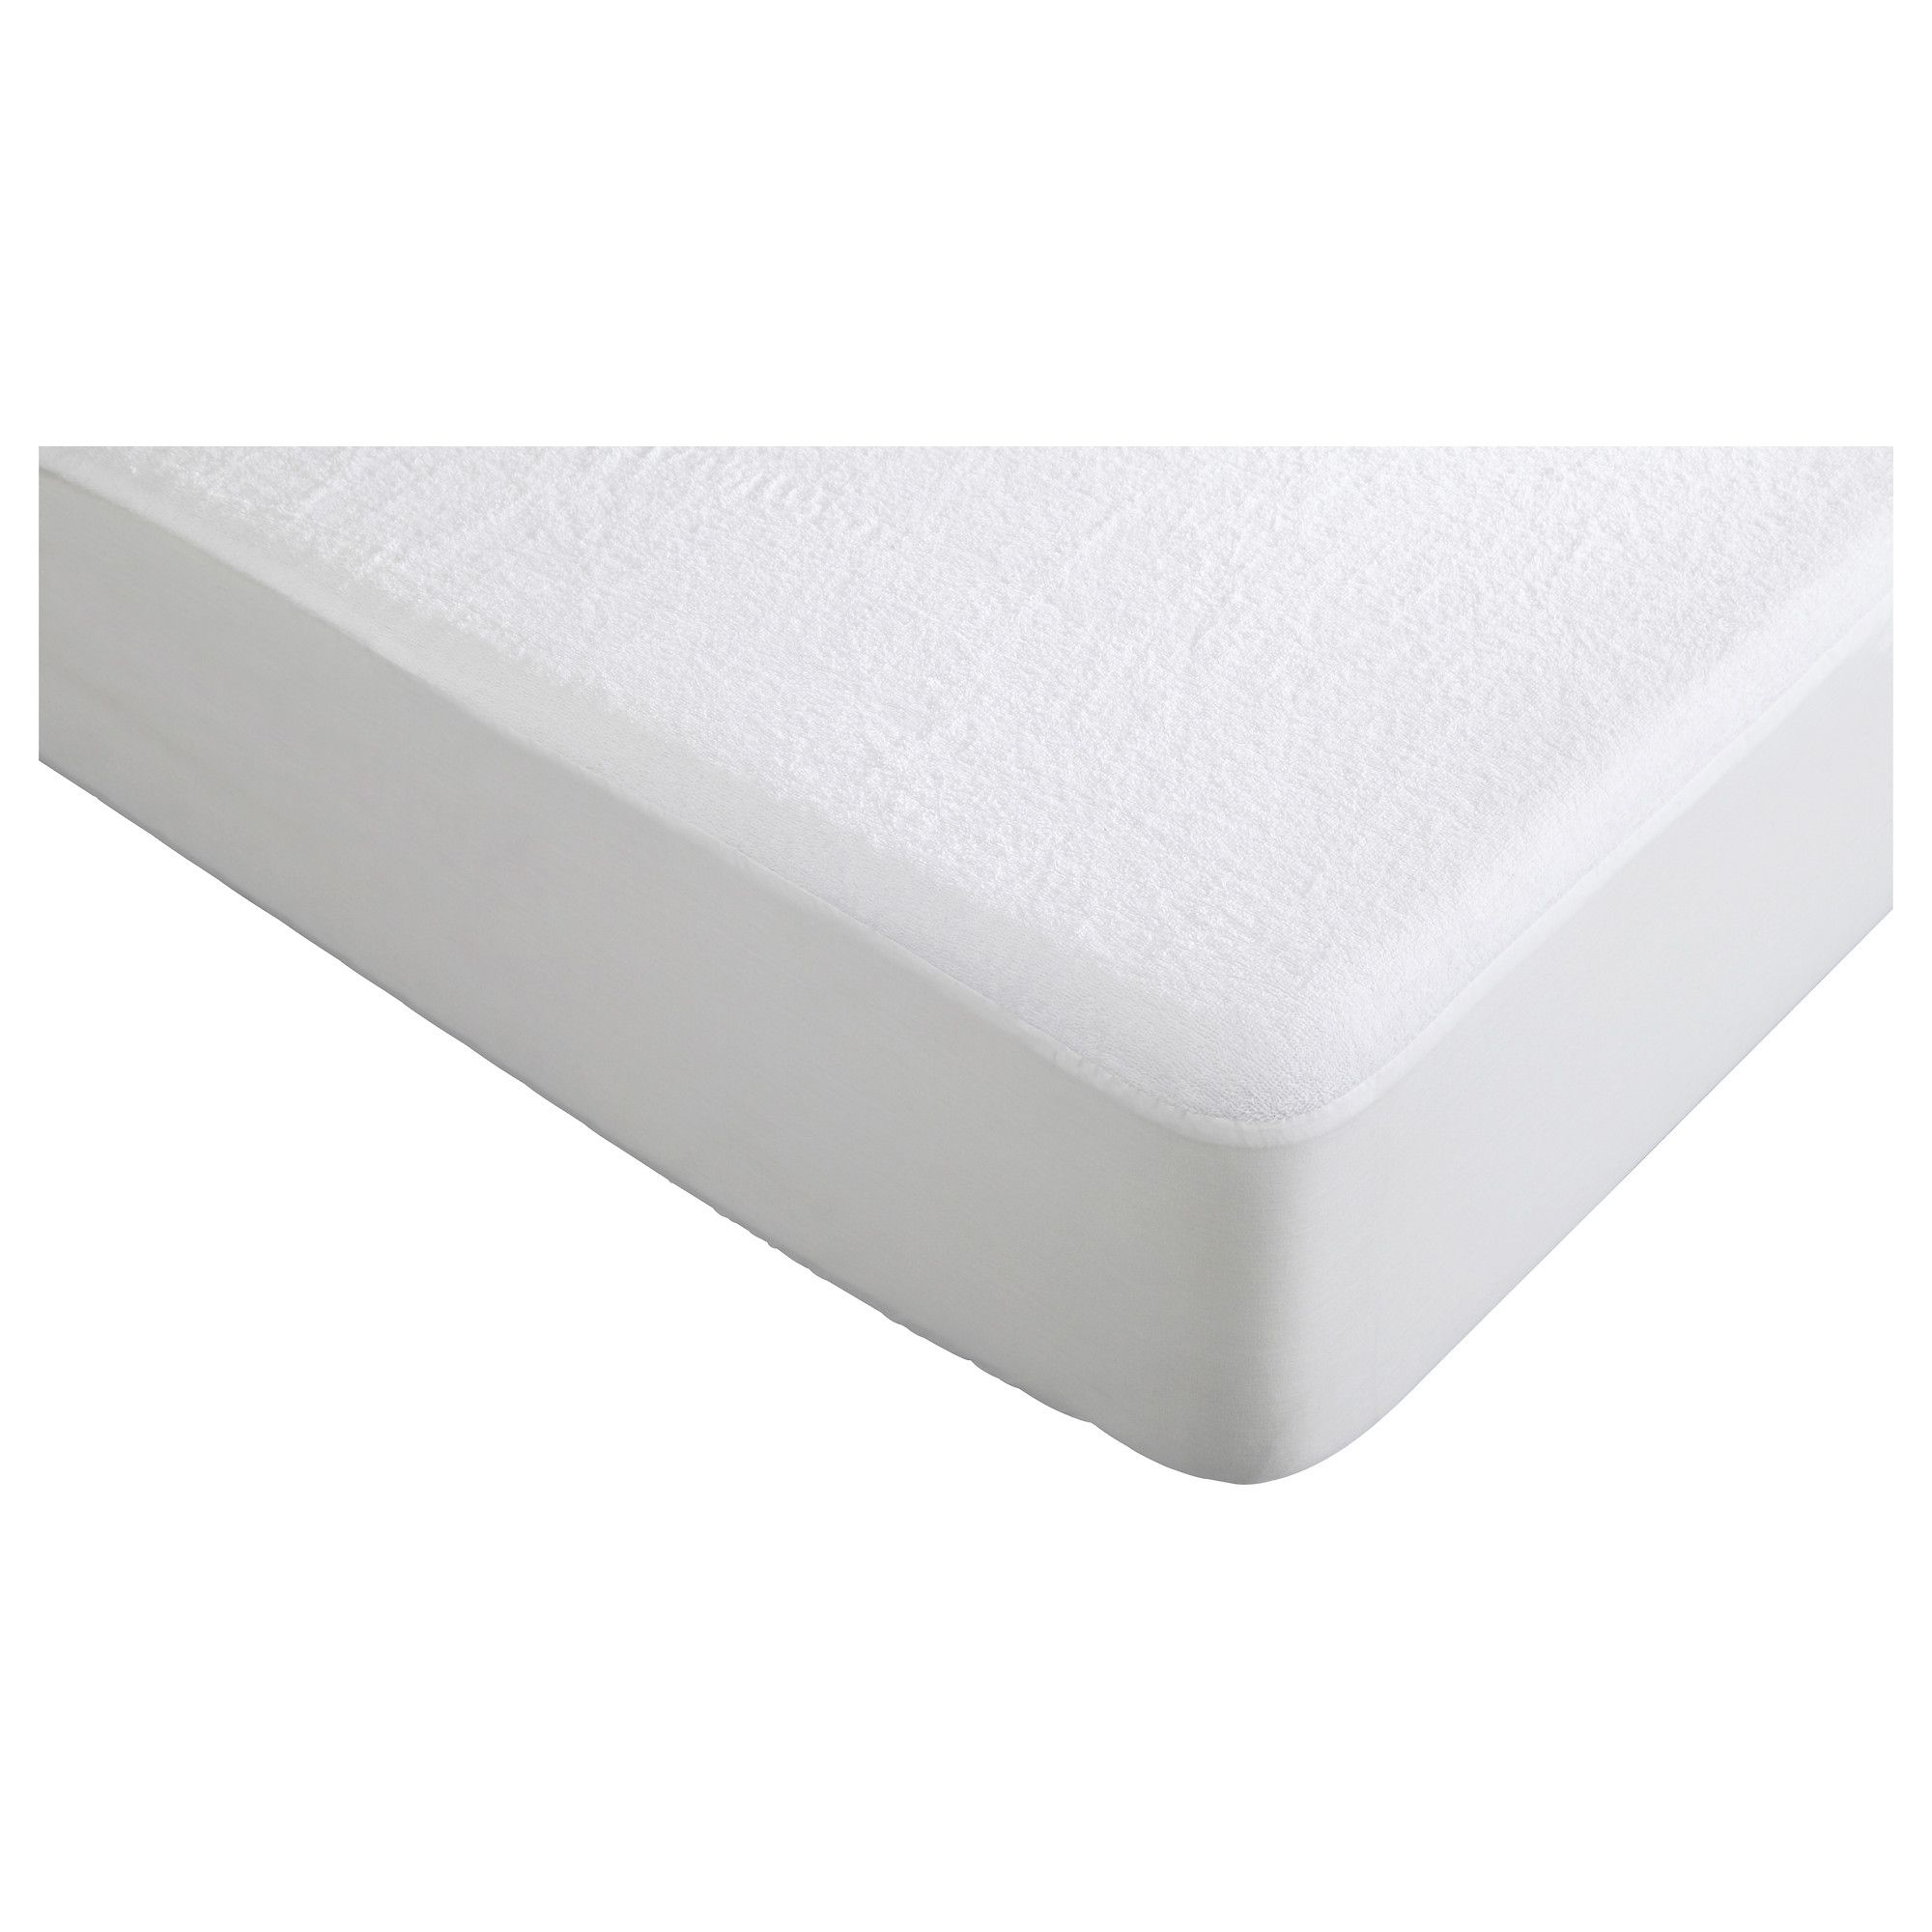 Us Furniture And Home Furnishings Mattress Protector Mattress